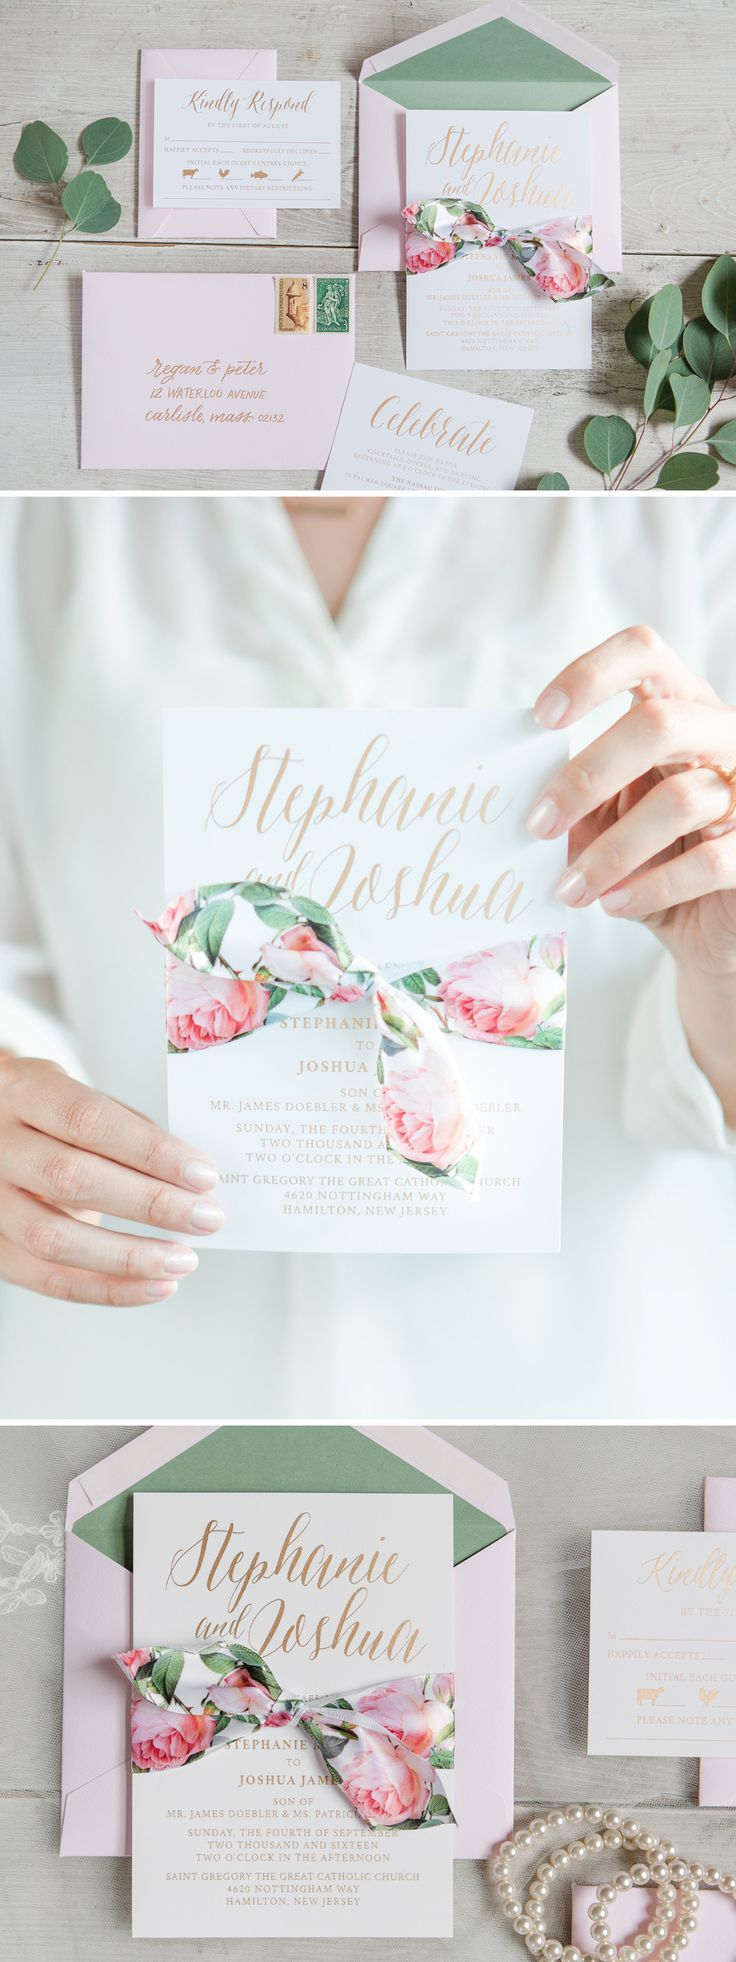 A romantic floral ribbon wedding invitation with blush roses, accented by touches of gold and eucalyptus green. Wedding Invitation by Penn & Paperie Photo by Heather Baker Photography